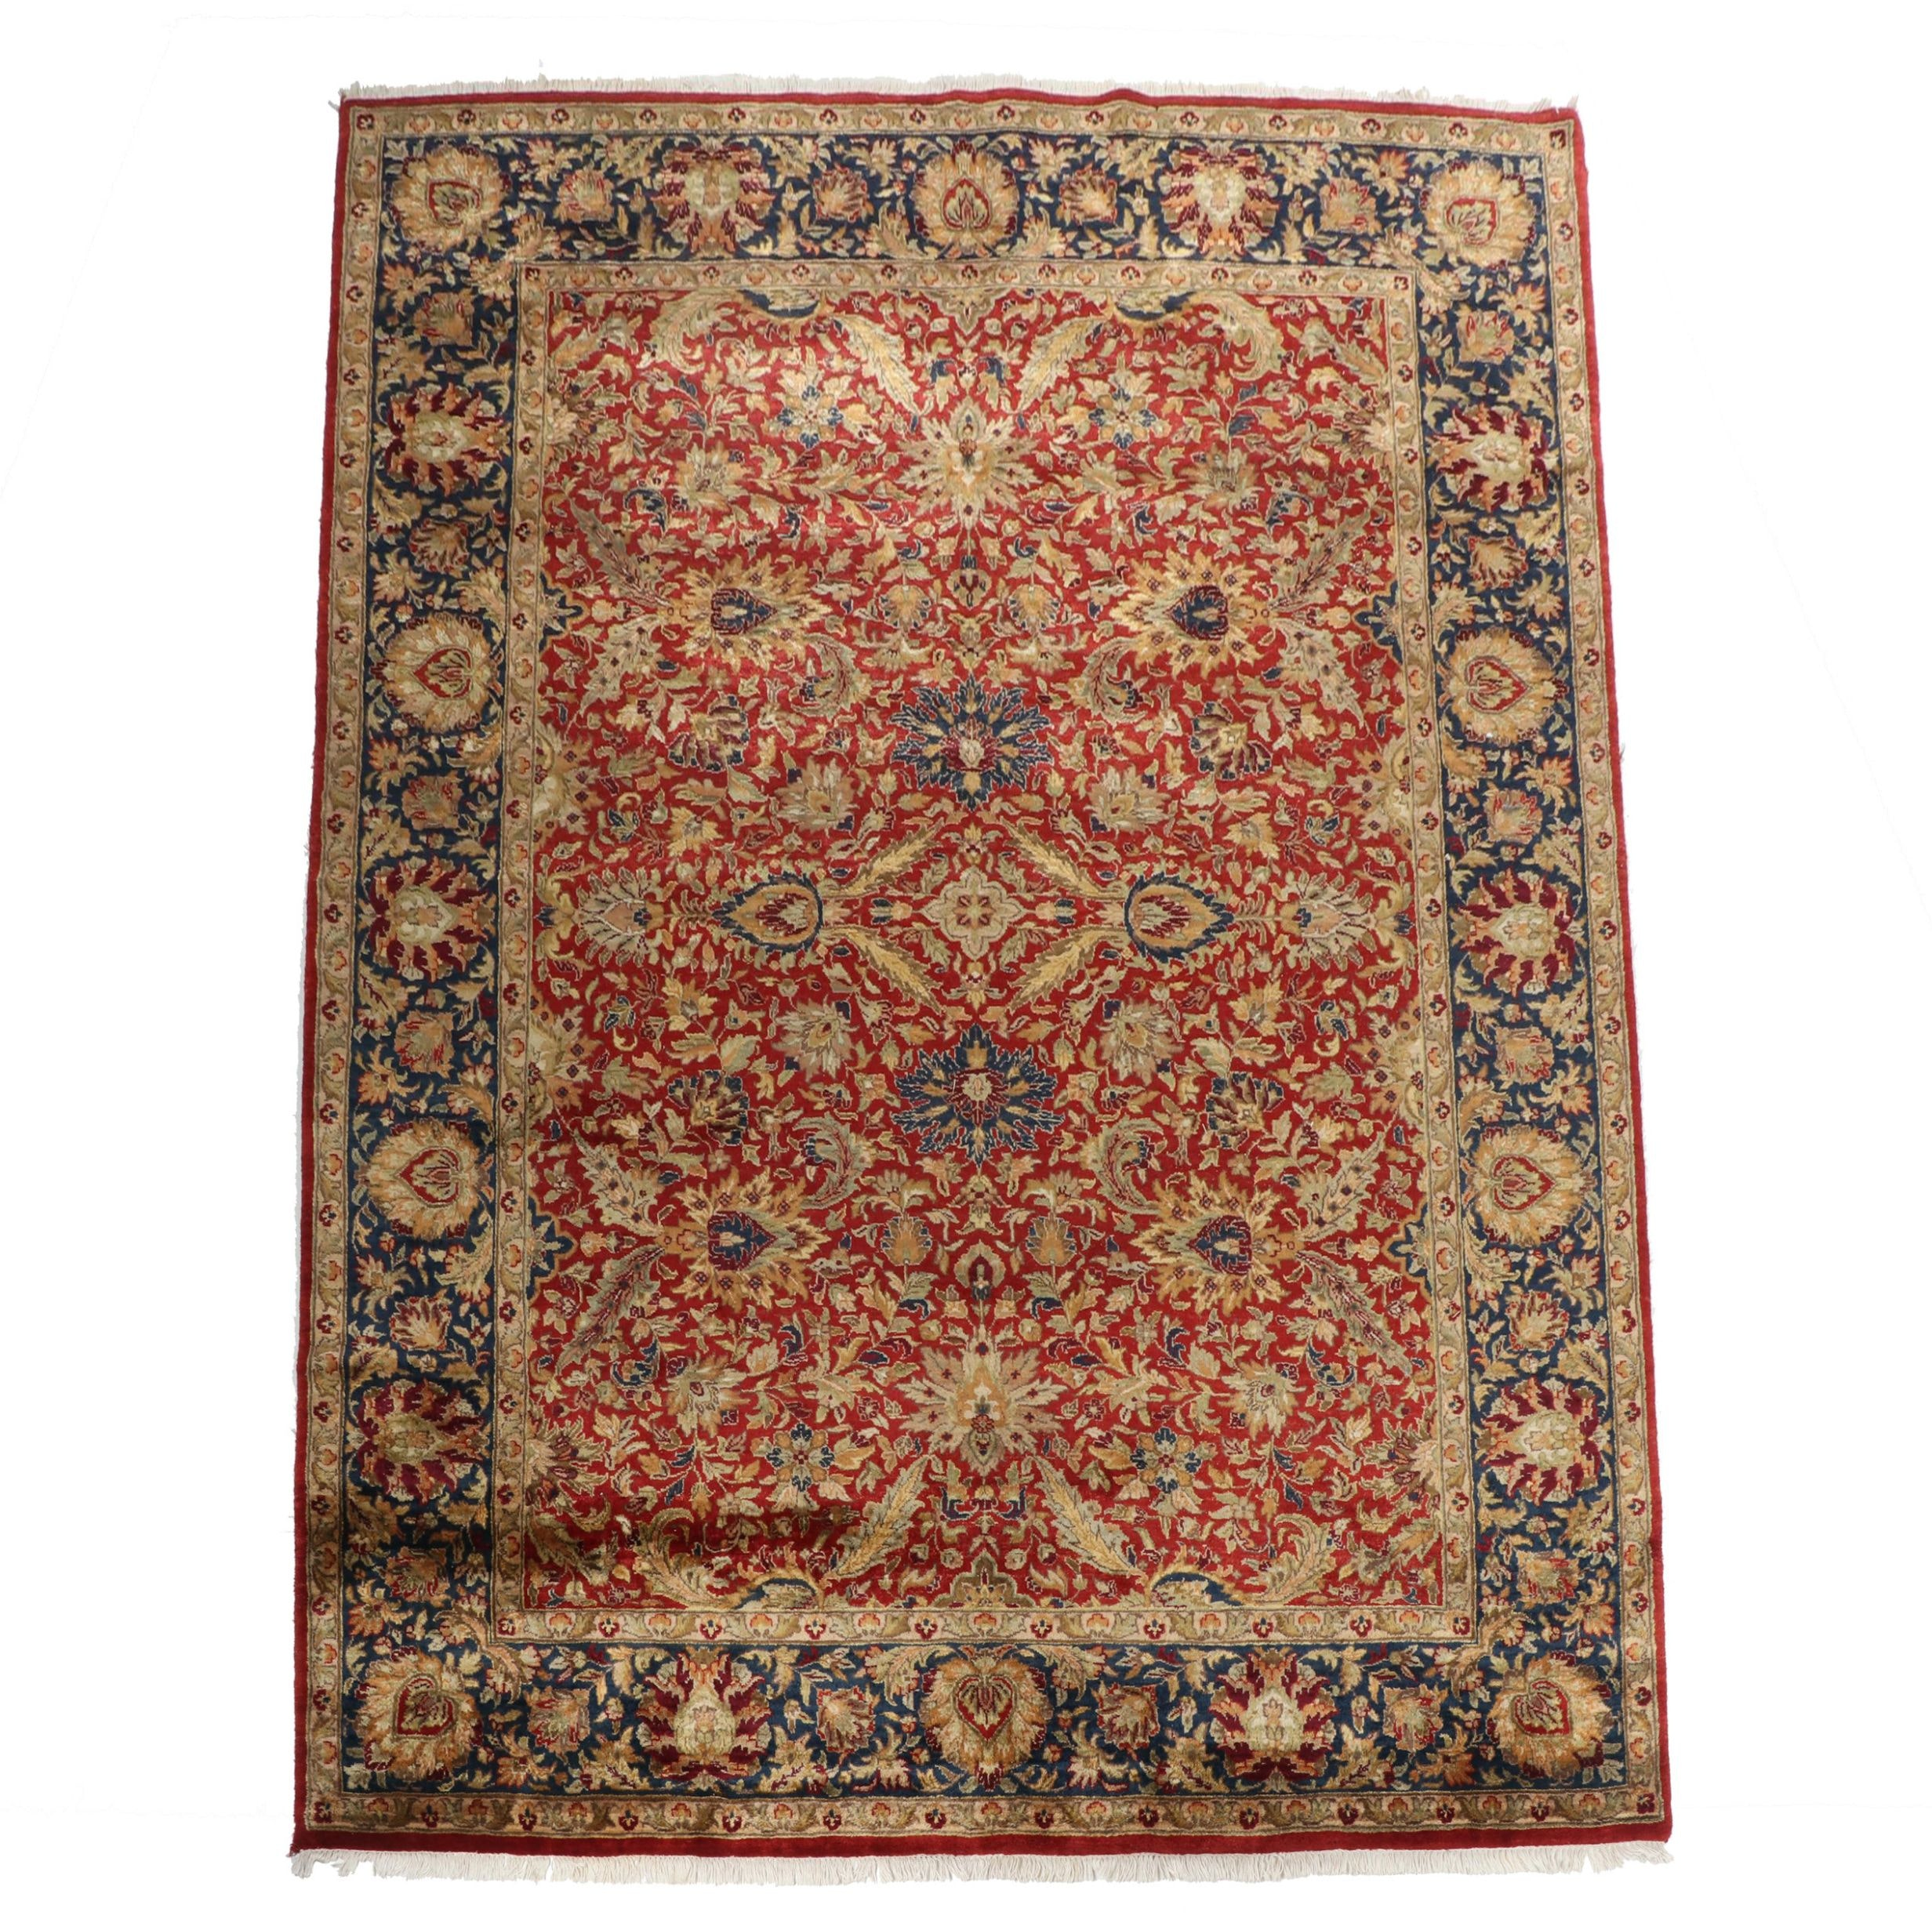 Hand-Knotted Indo-Persian Wool Room Sized Rug